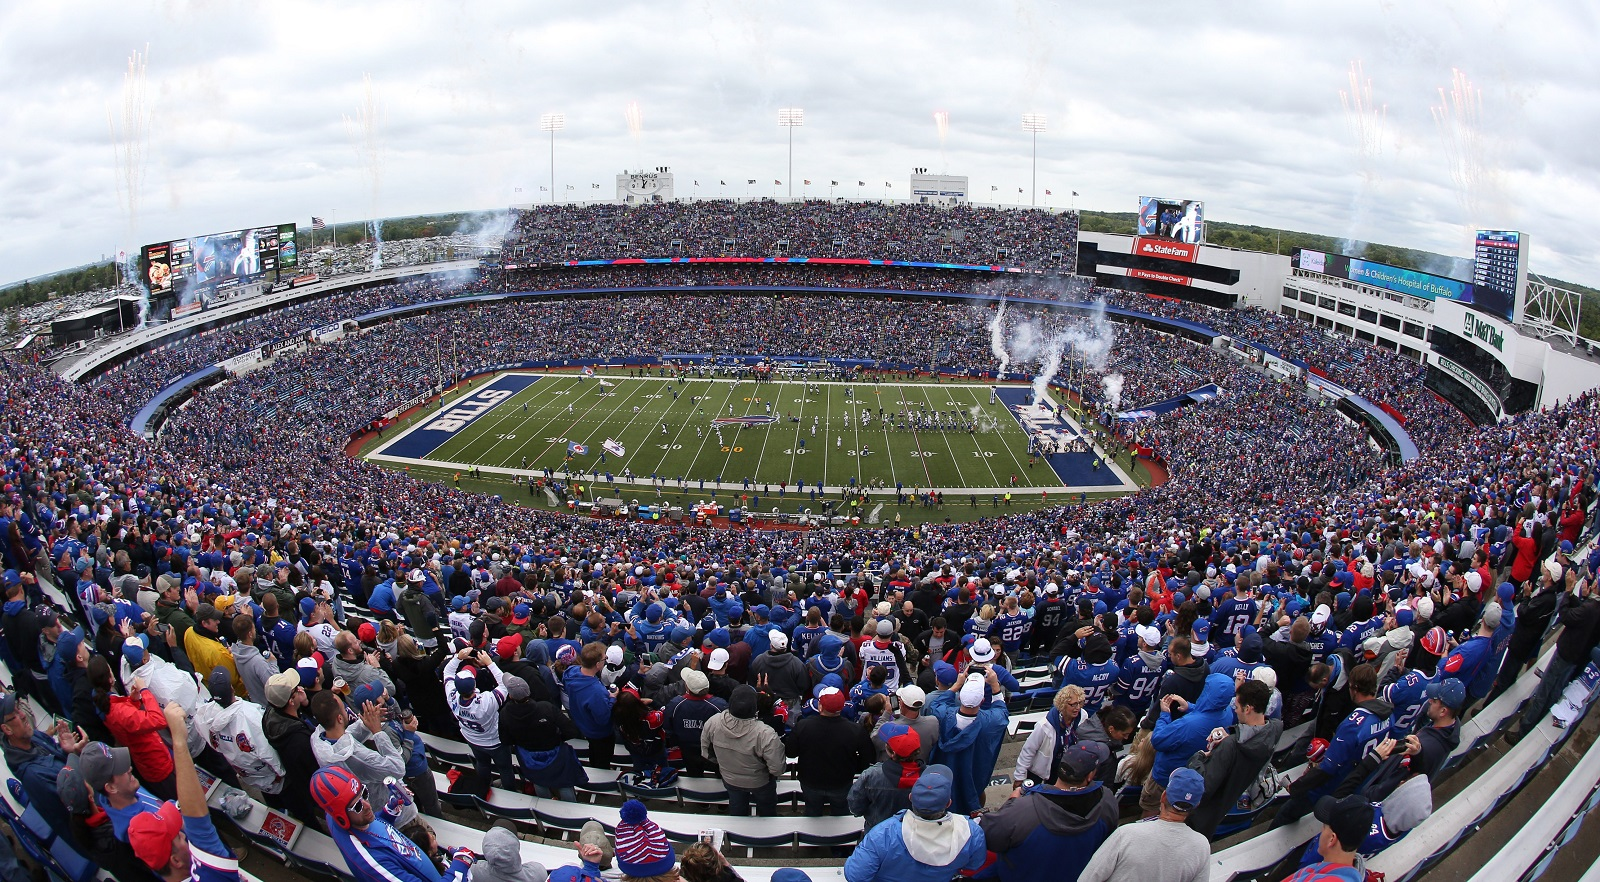 There's some debate over how the Bills should handle the future of Ralph Wilson Stadium.(James P. McCoy/ Buffalo News file photo)